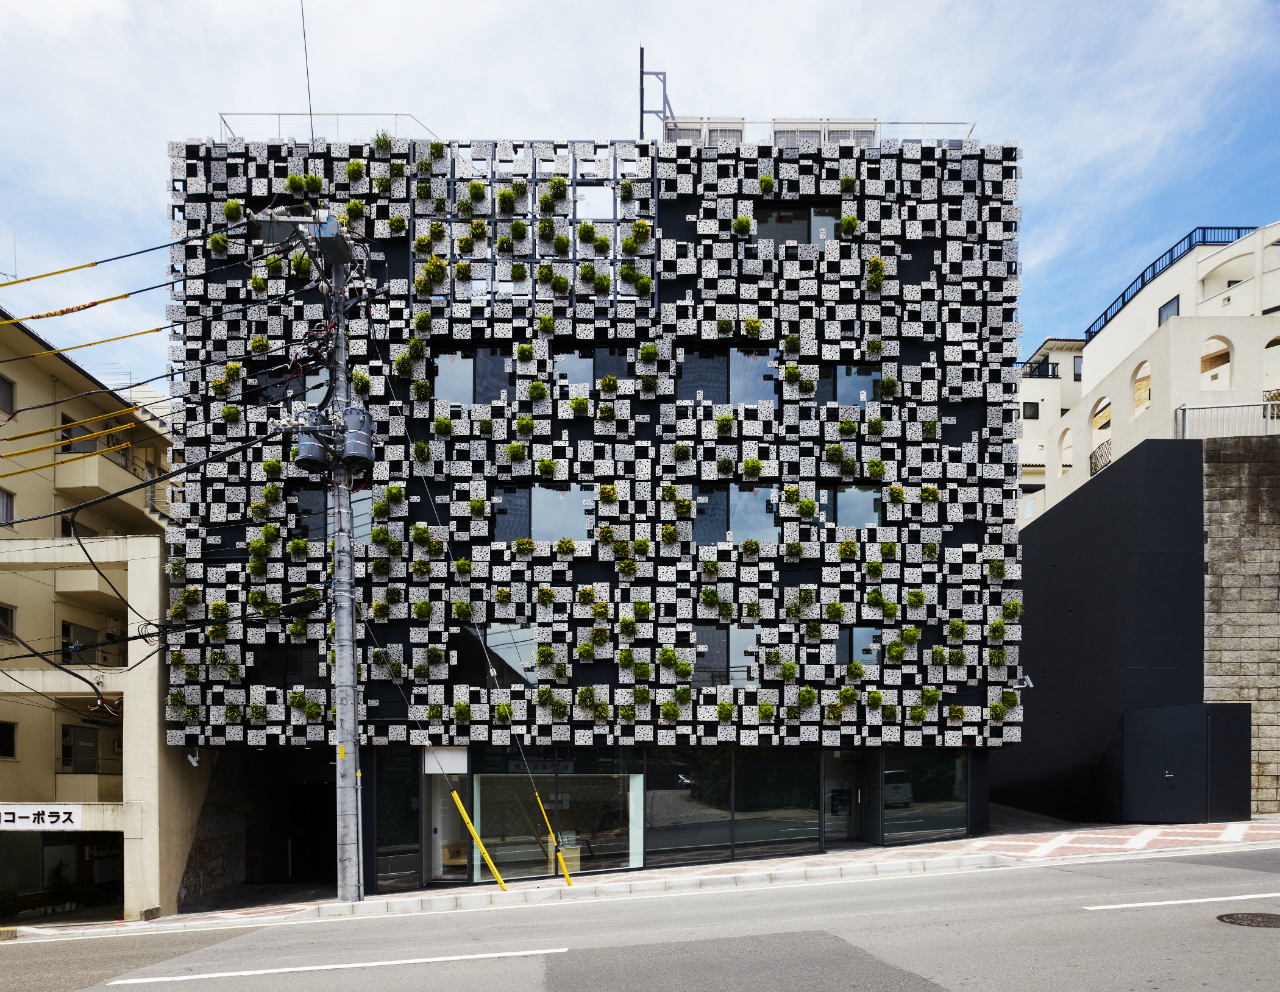 Green Cast / Kengo Kuma & Associates , Cortesia de Kengo Kuma & Associates